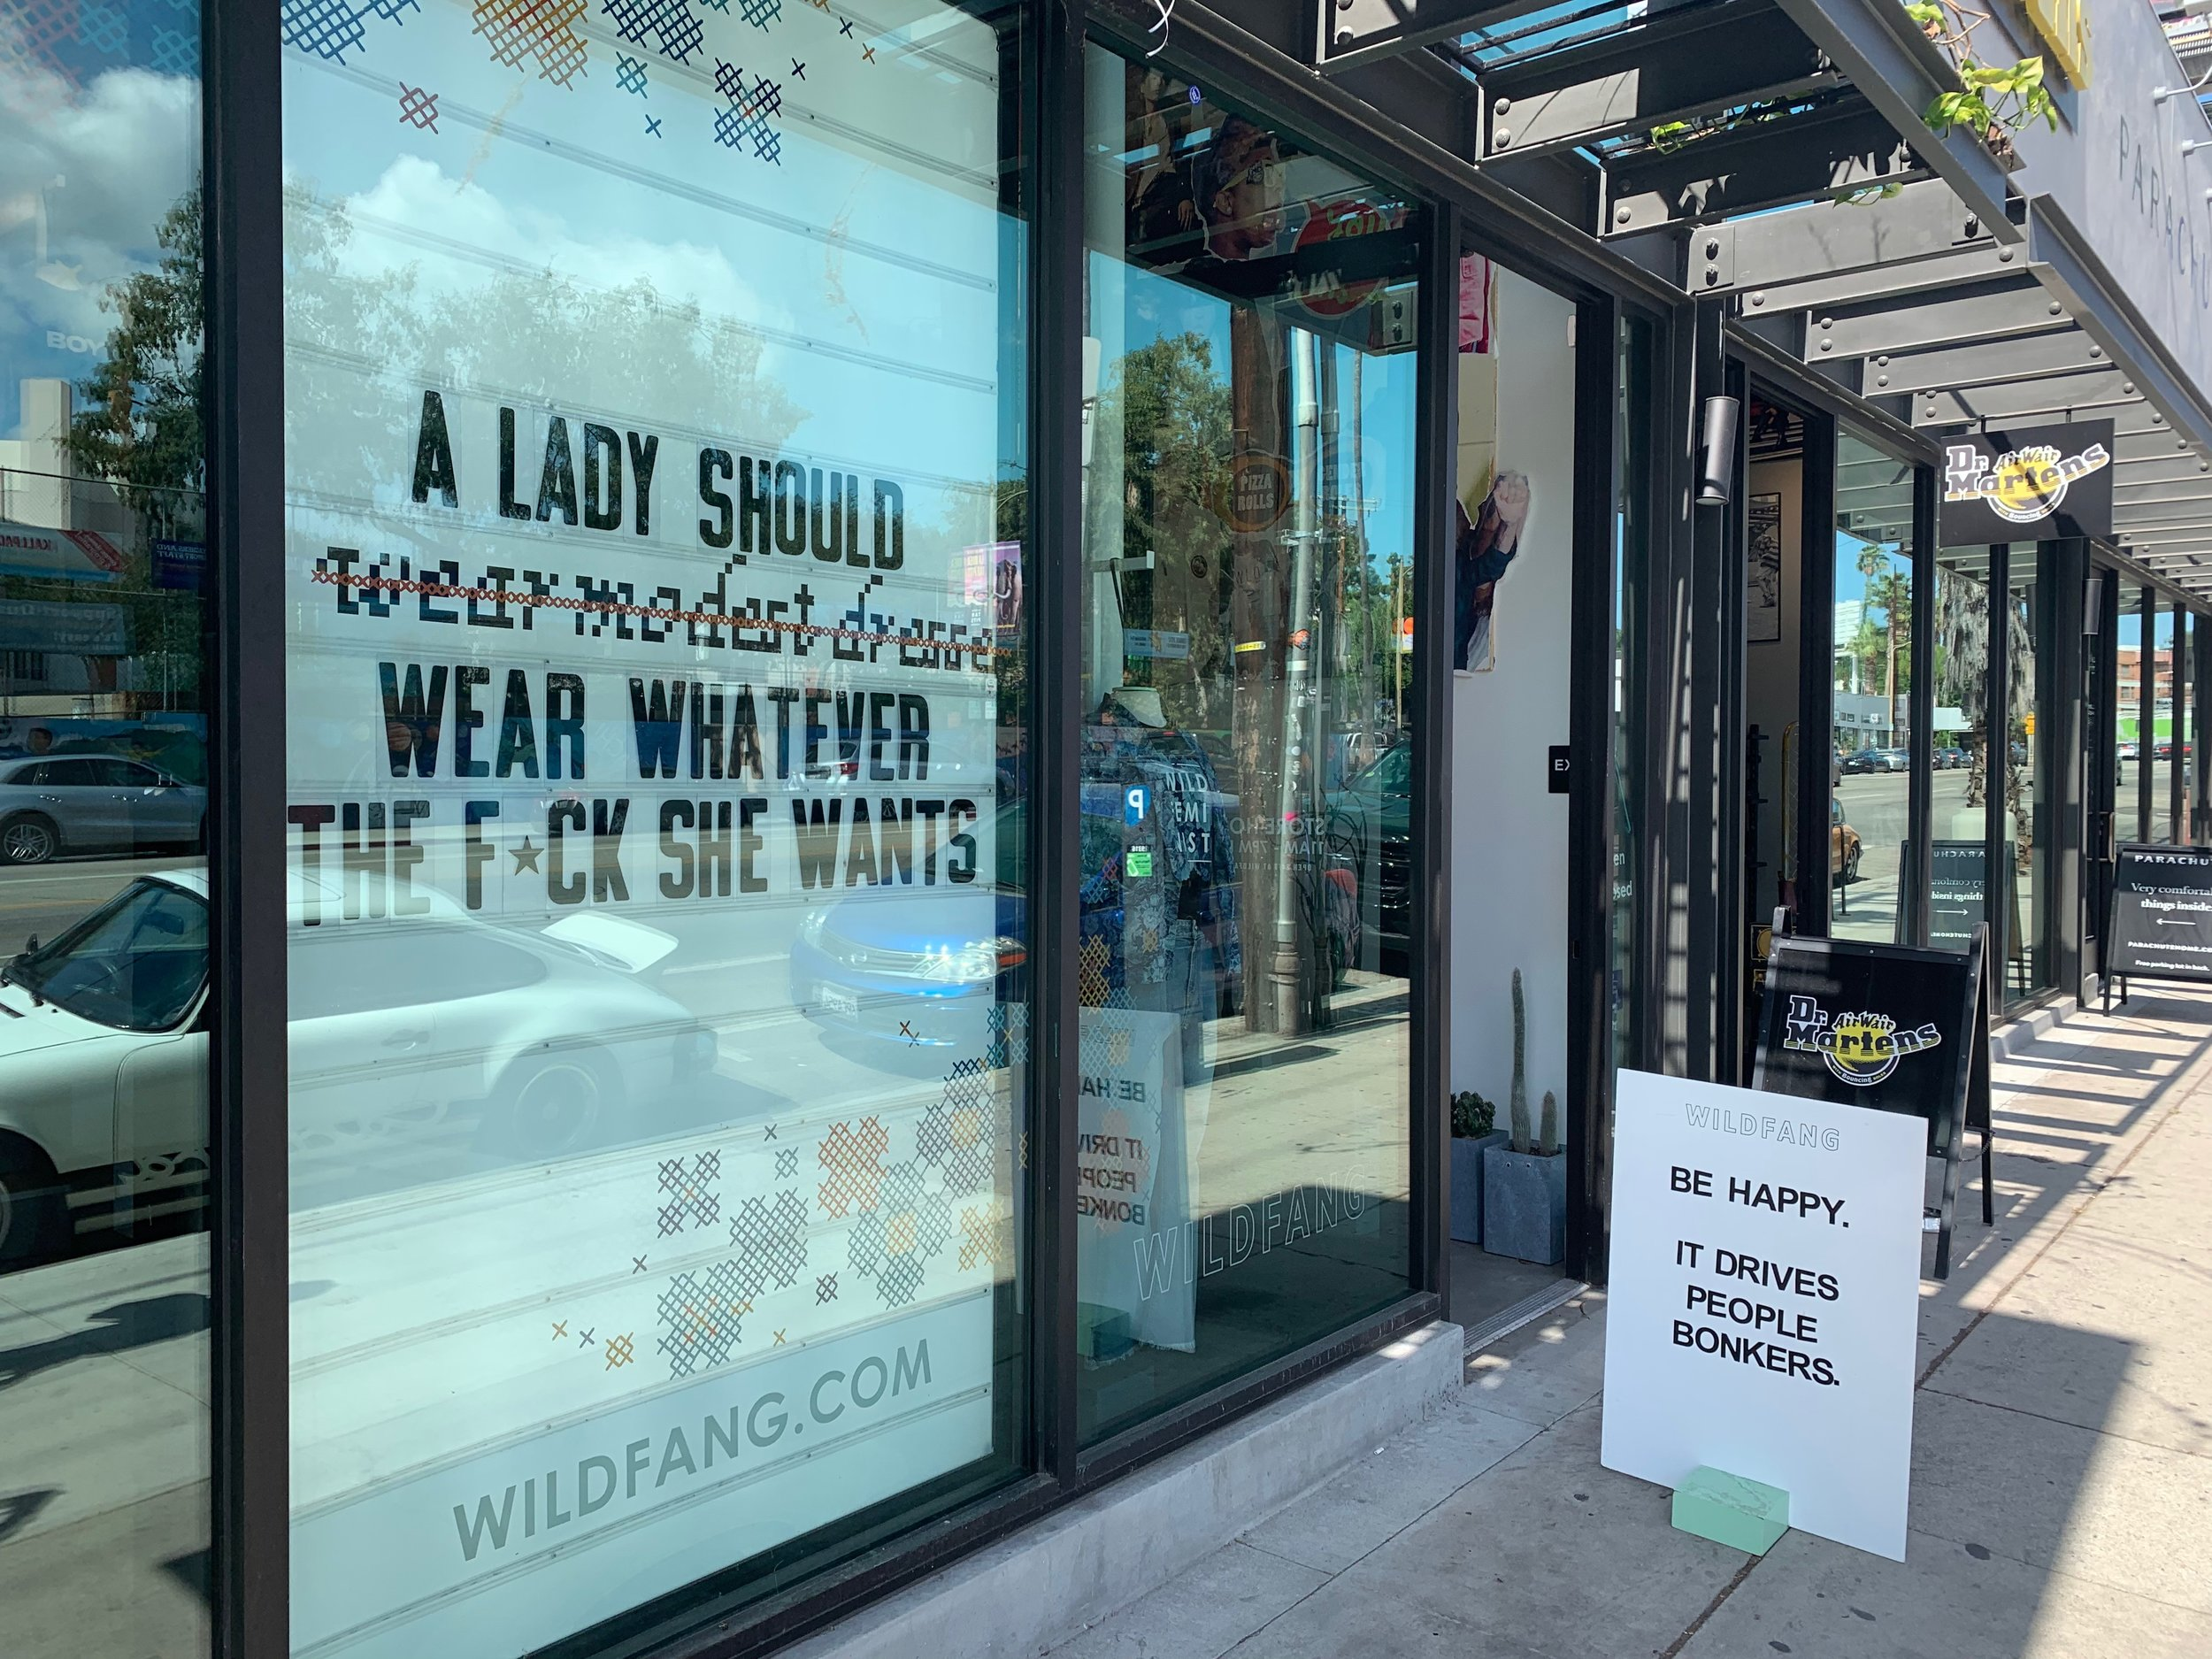 As you can see, the folks at Wild Fang are very serious about their core belief. In addition to being bold in belief, they are also bold with their actions. In 2018, the company raised over $400K for charities that support reproductive, immigrant, and women's/human rights.